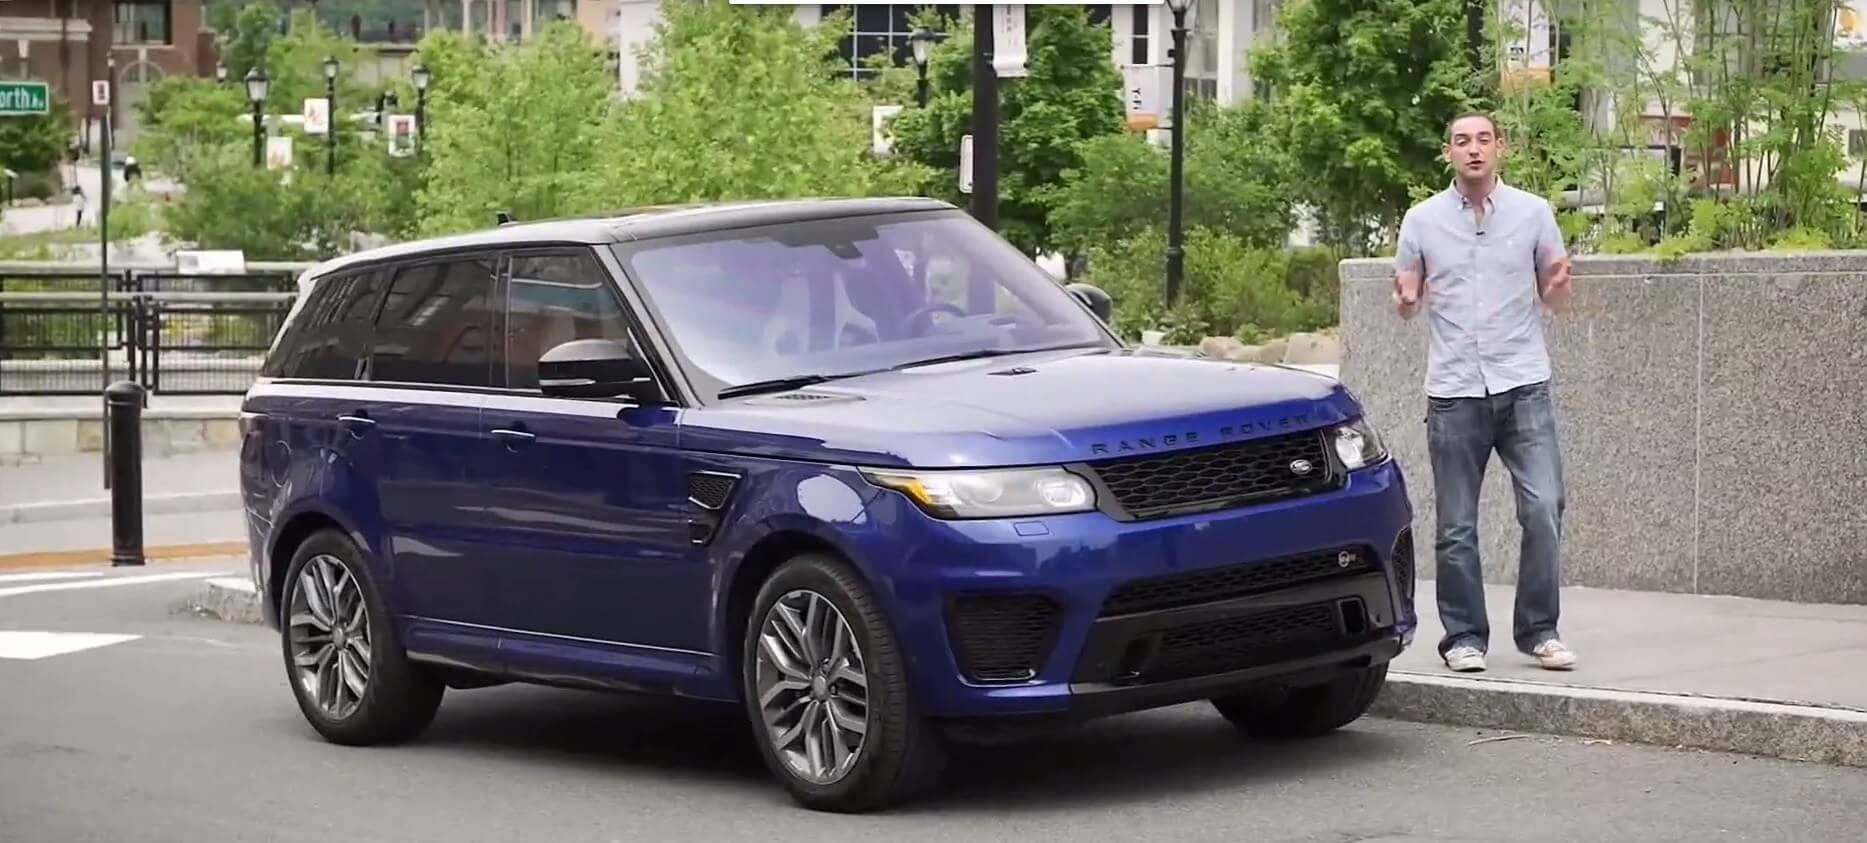 land rover range rover sport svr review carzone new car review. Black Bedroom Furniture Sets. Home Design Ideas